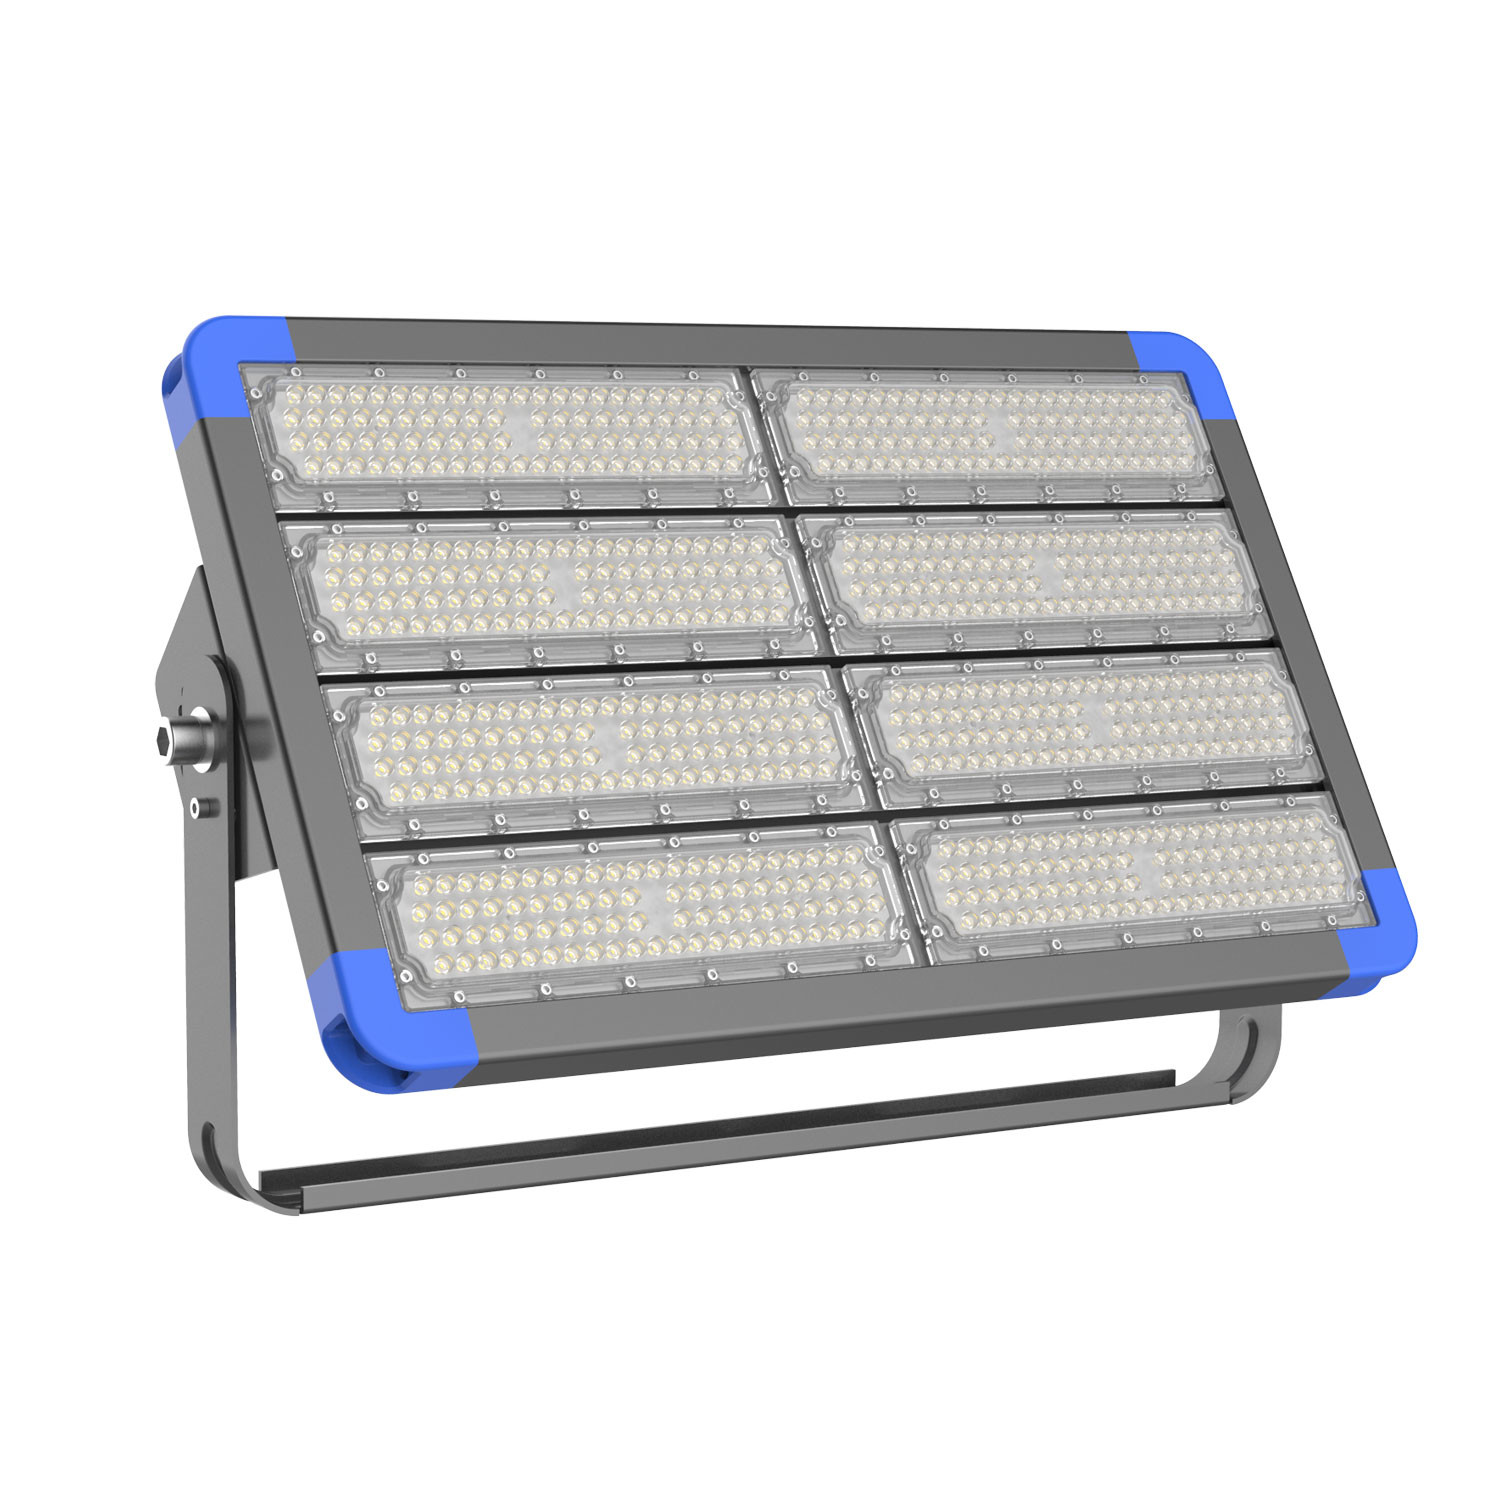 IP66 400W LUMILEDs LED Tunnel Flood Light 5 Years Warranty FCC